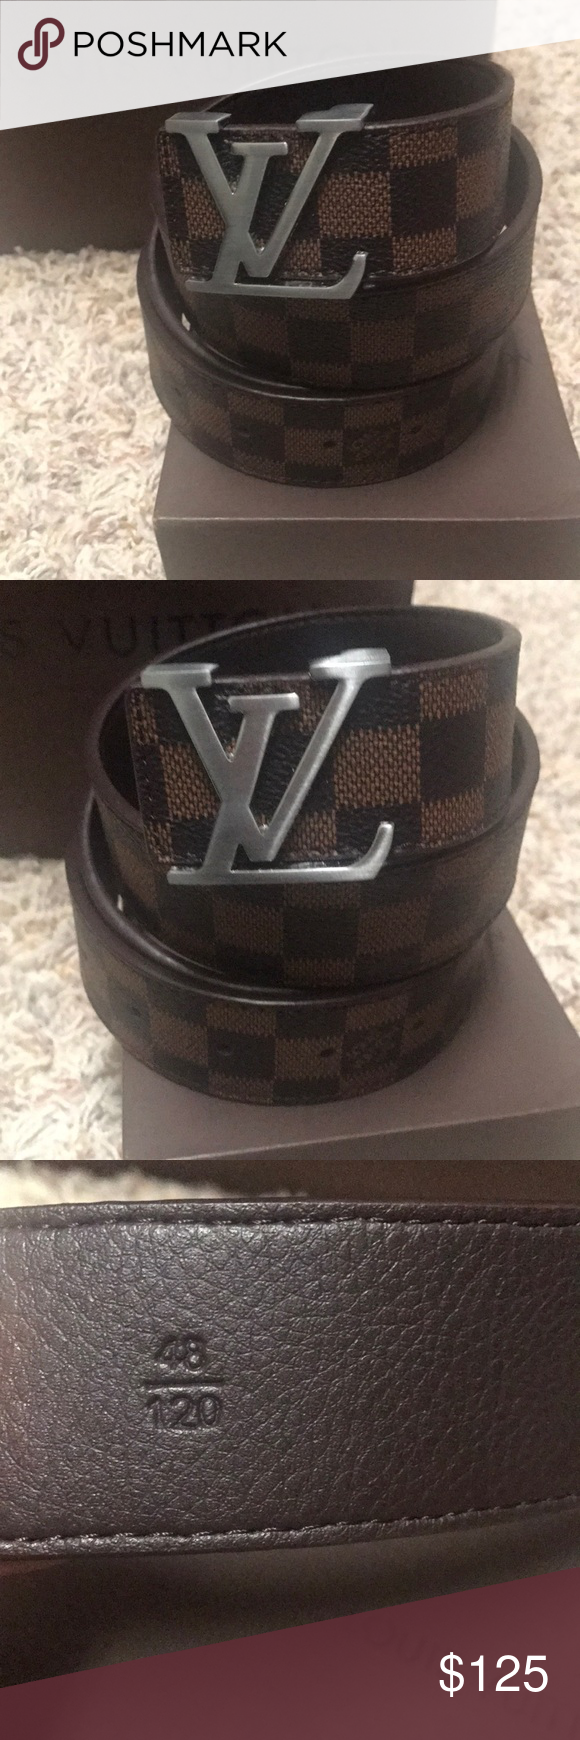 Lv Damier Belt Brown Leather Louis Vuitton Belt With Silver Buckle Brand New Size 48 120 Louis Vuitton Louis Vuitton Accessories Louis Vuitton Belt Lv Damier